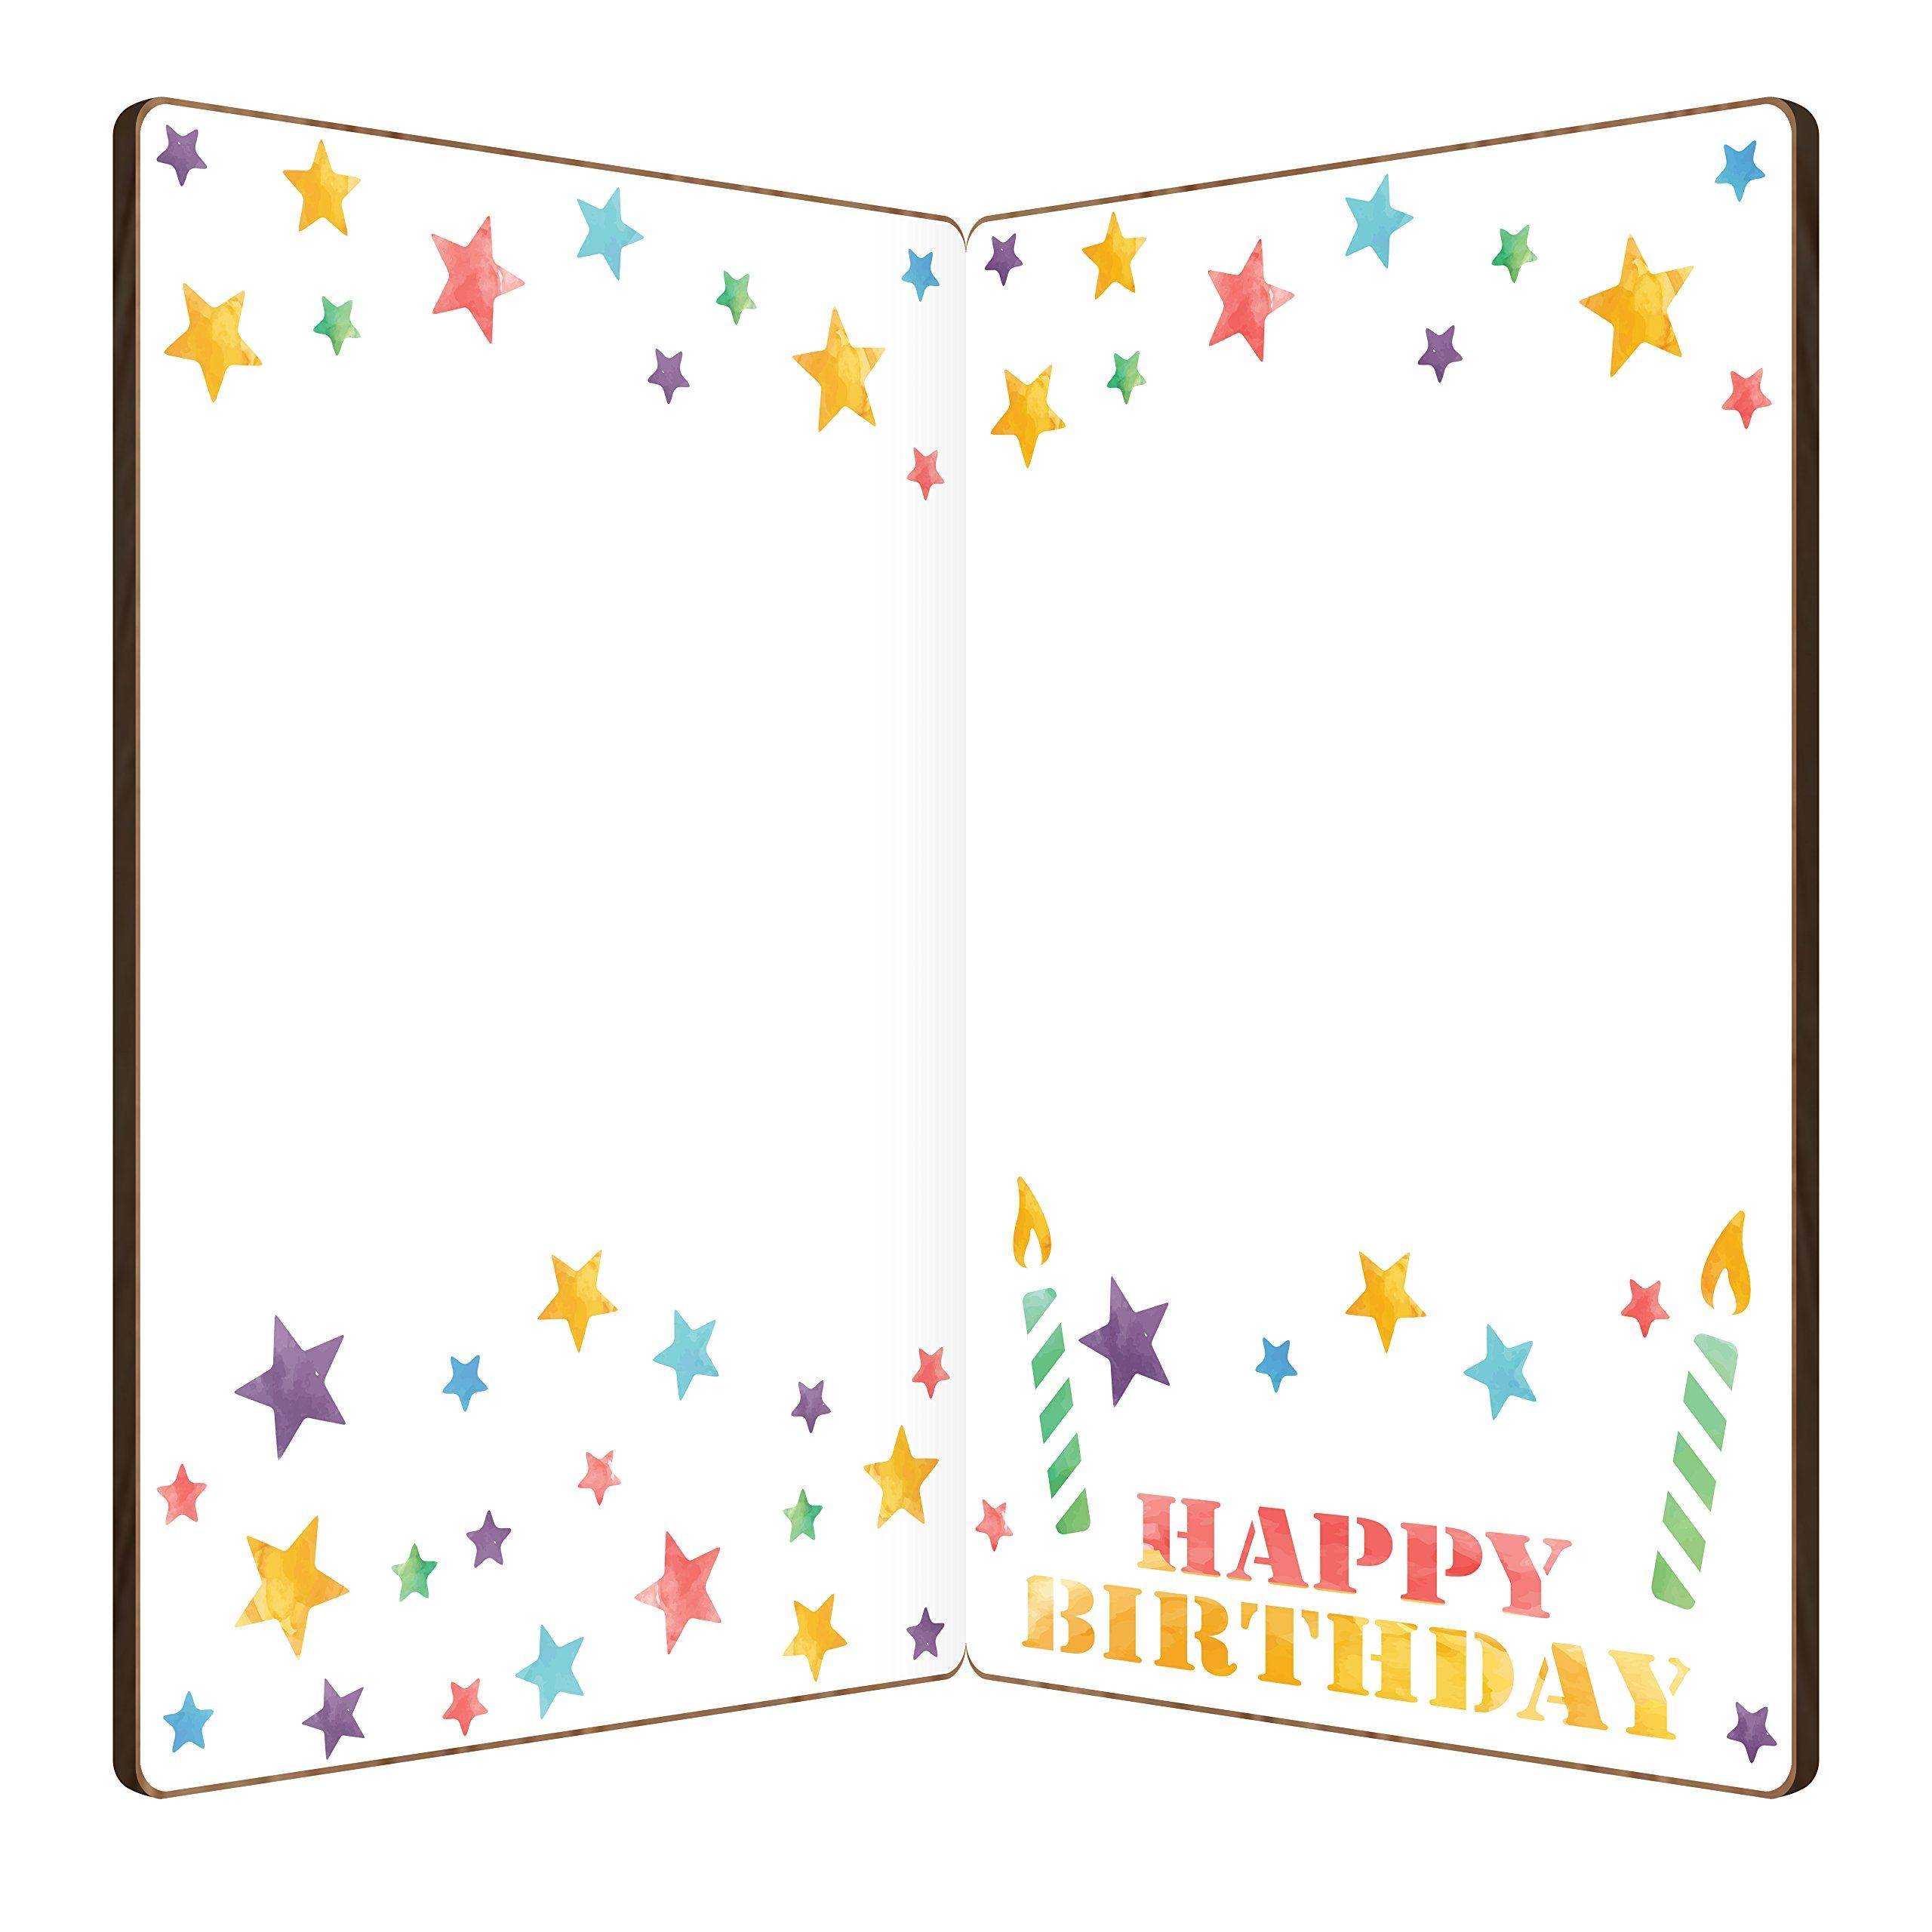 Happy birthday card real bamboo wood greeting card with